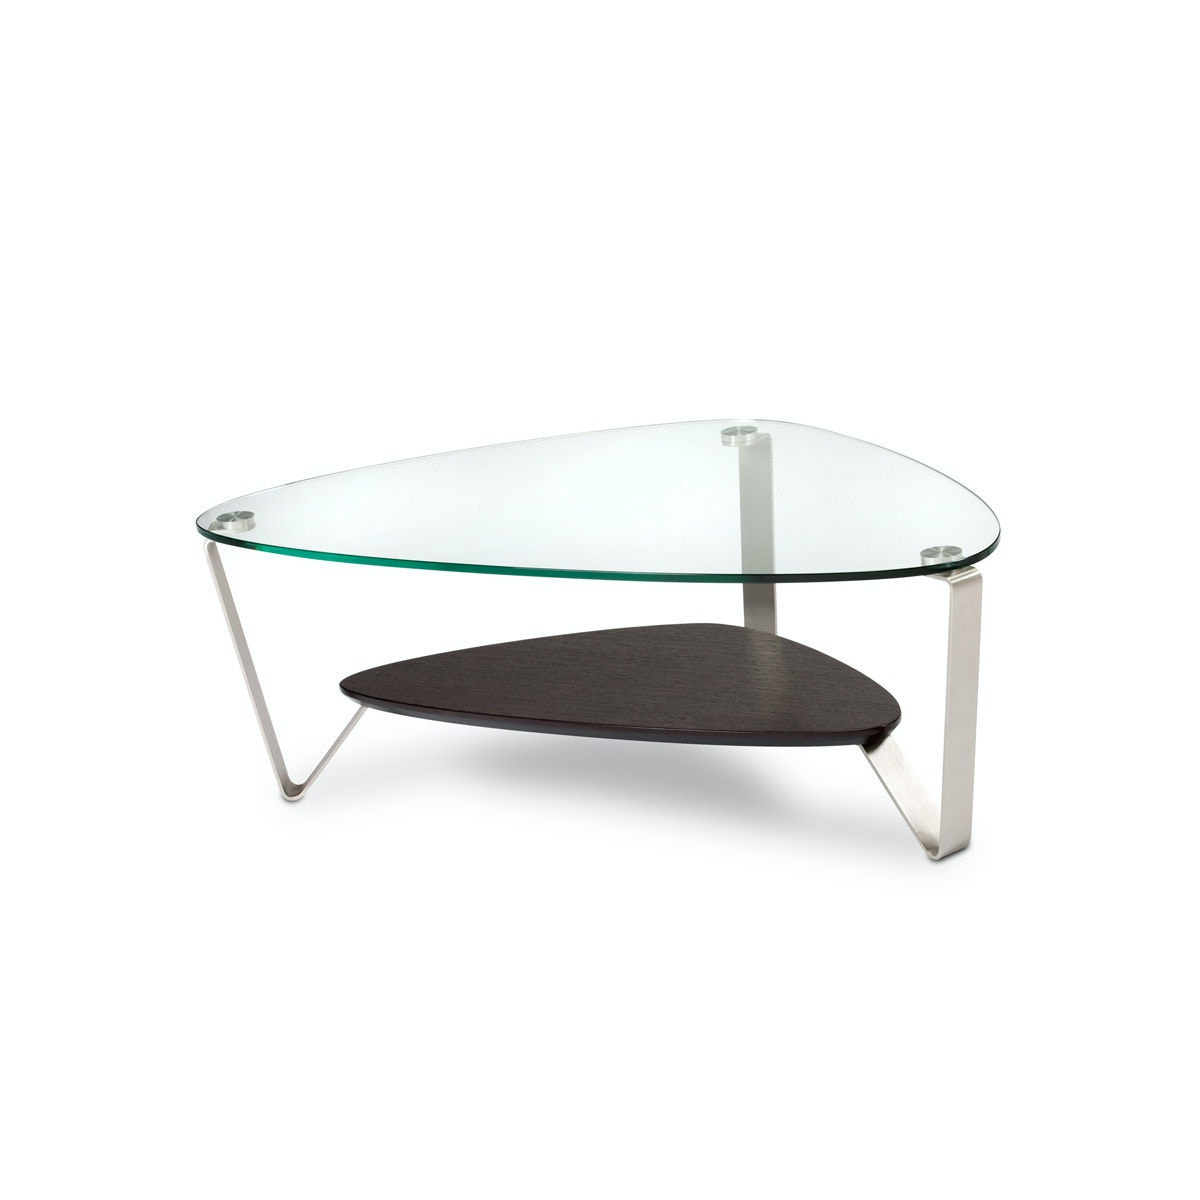 living es sofa best click clack bed bdi room dino 1344 small coffee table upper at home furnishings